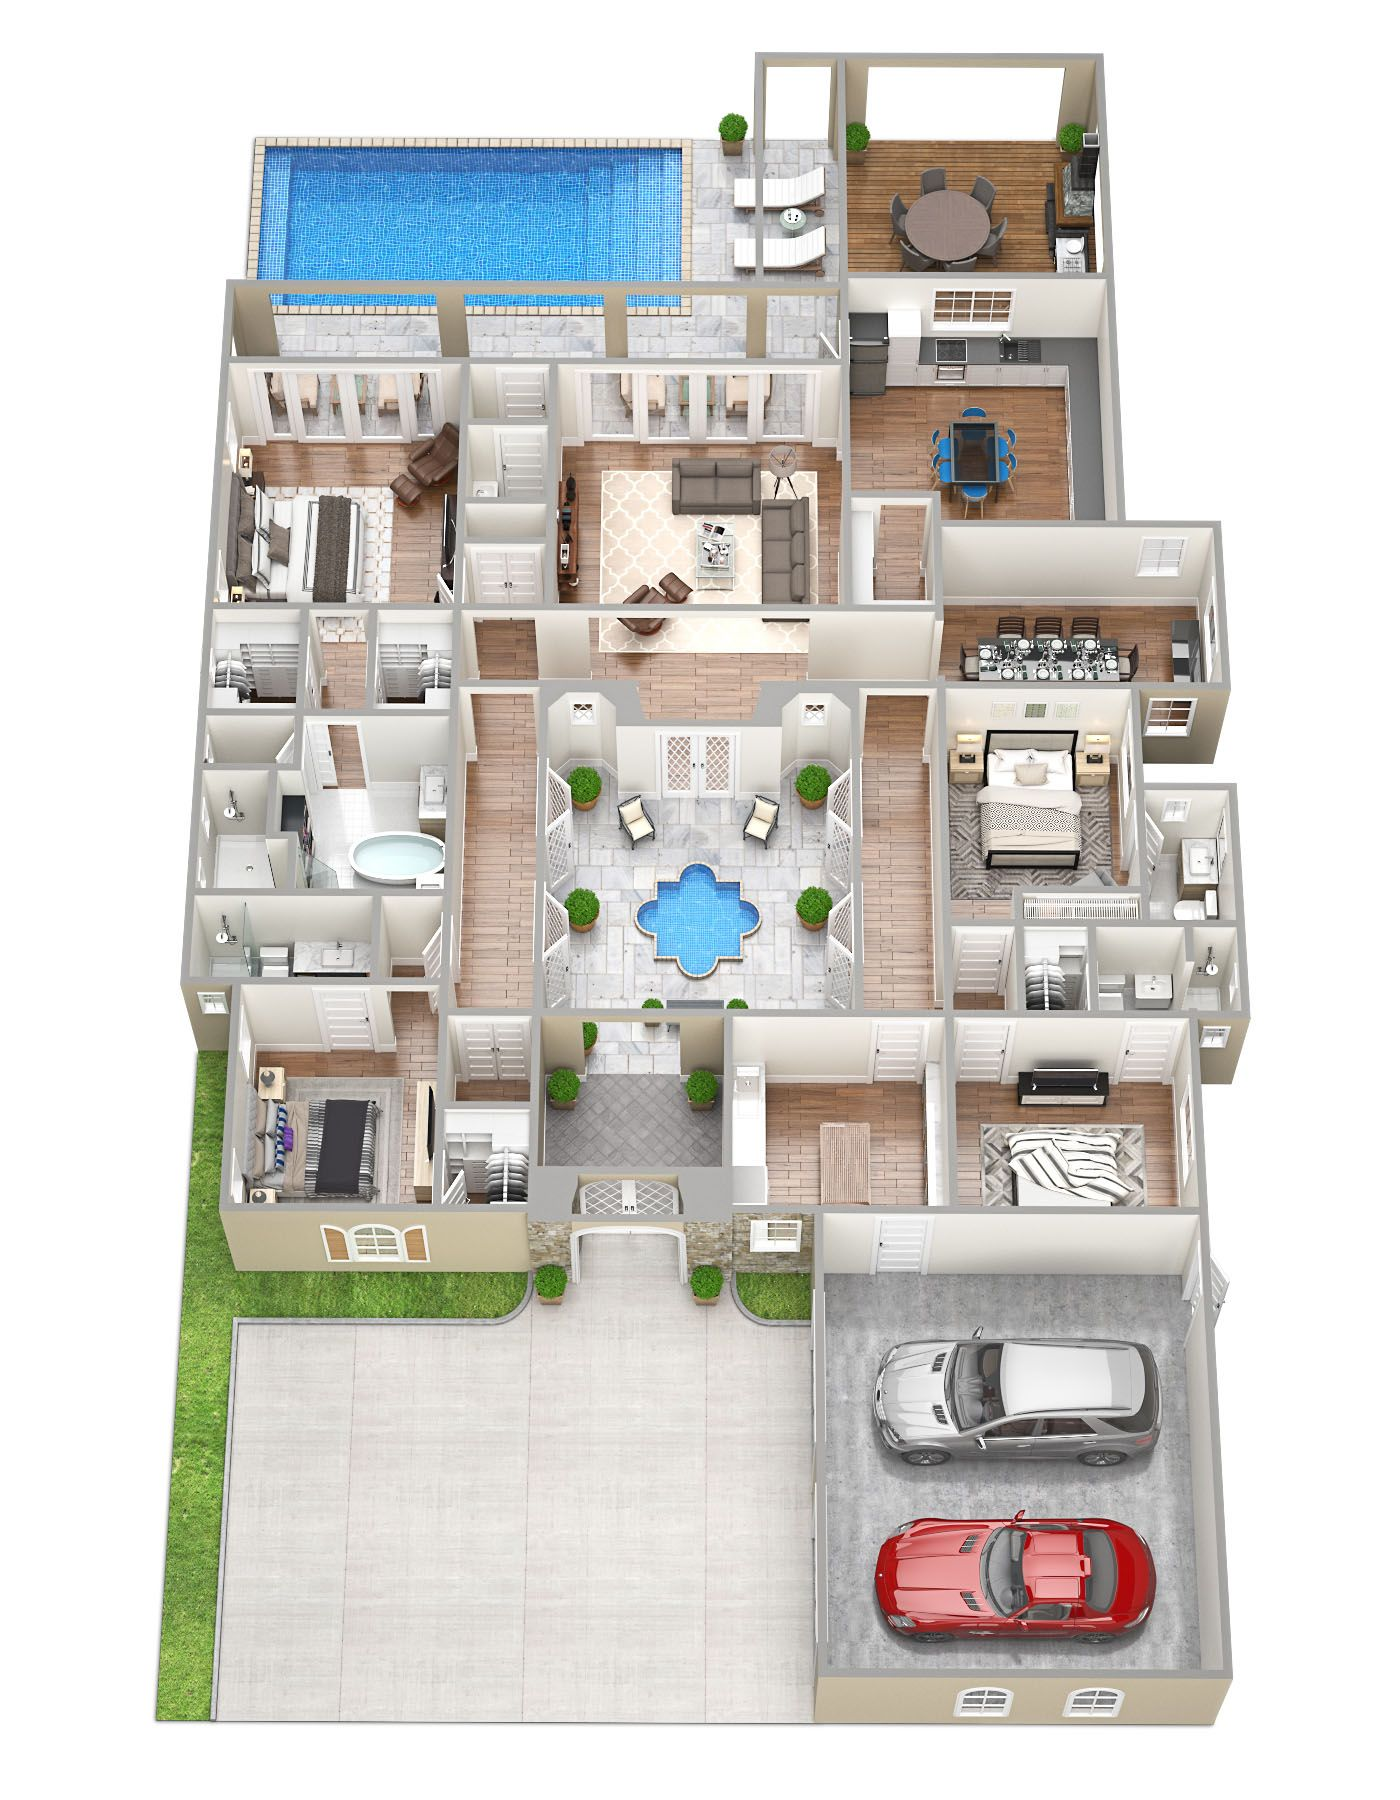 3D Floor Plans Sims house plans, Pool house plans, House